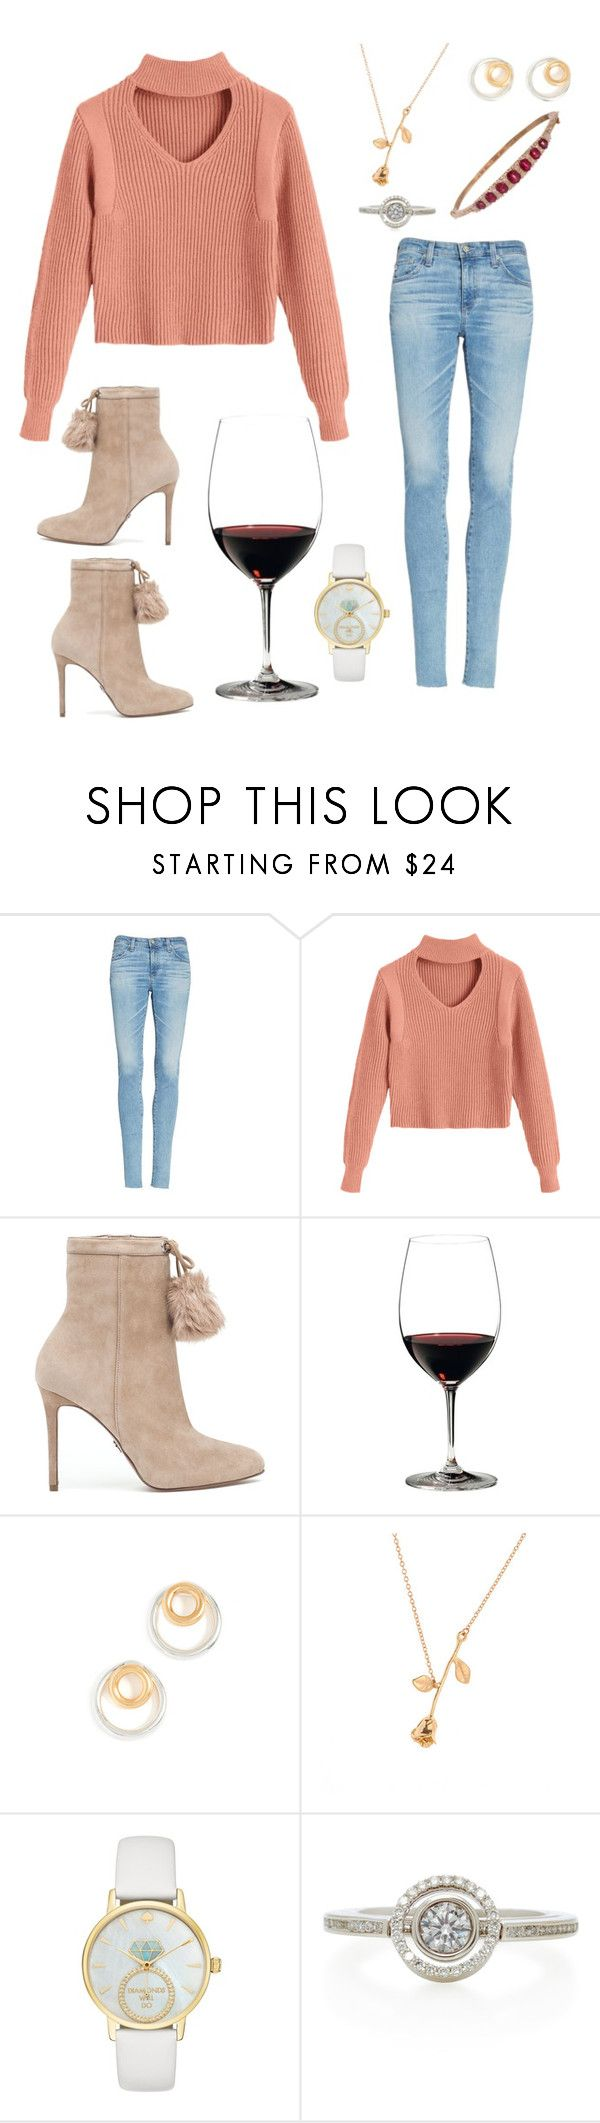 """""""Bachelor Premiere- Jade"""" by jporter2 ❤ liked on Polyvore featuring AG Adriano Goldschmied, MICHAEL Michael Kors, Riedel, Madewell, Kate Spade and Marie Mas"""